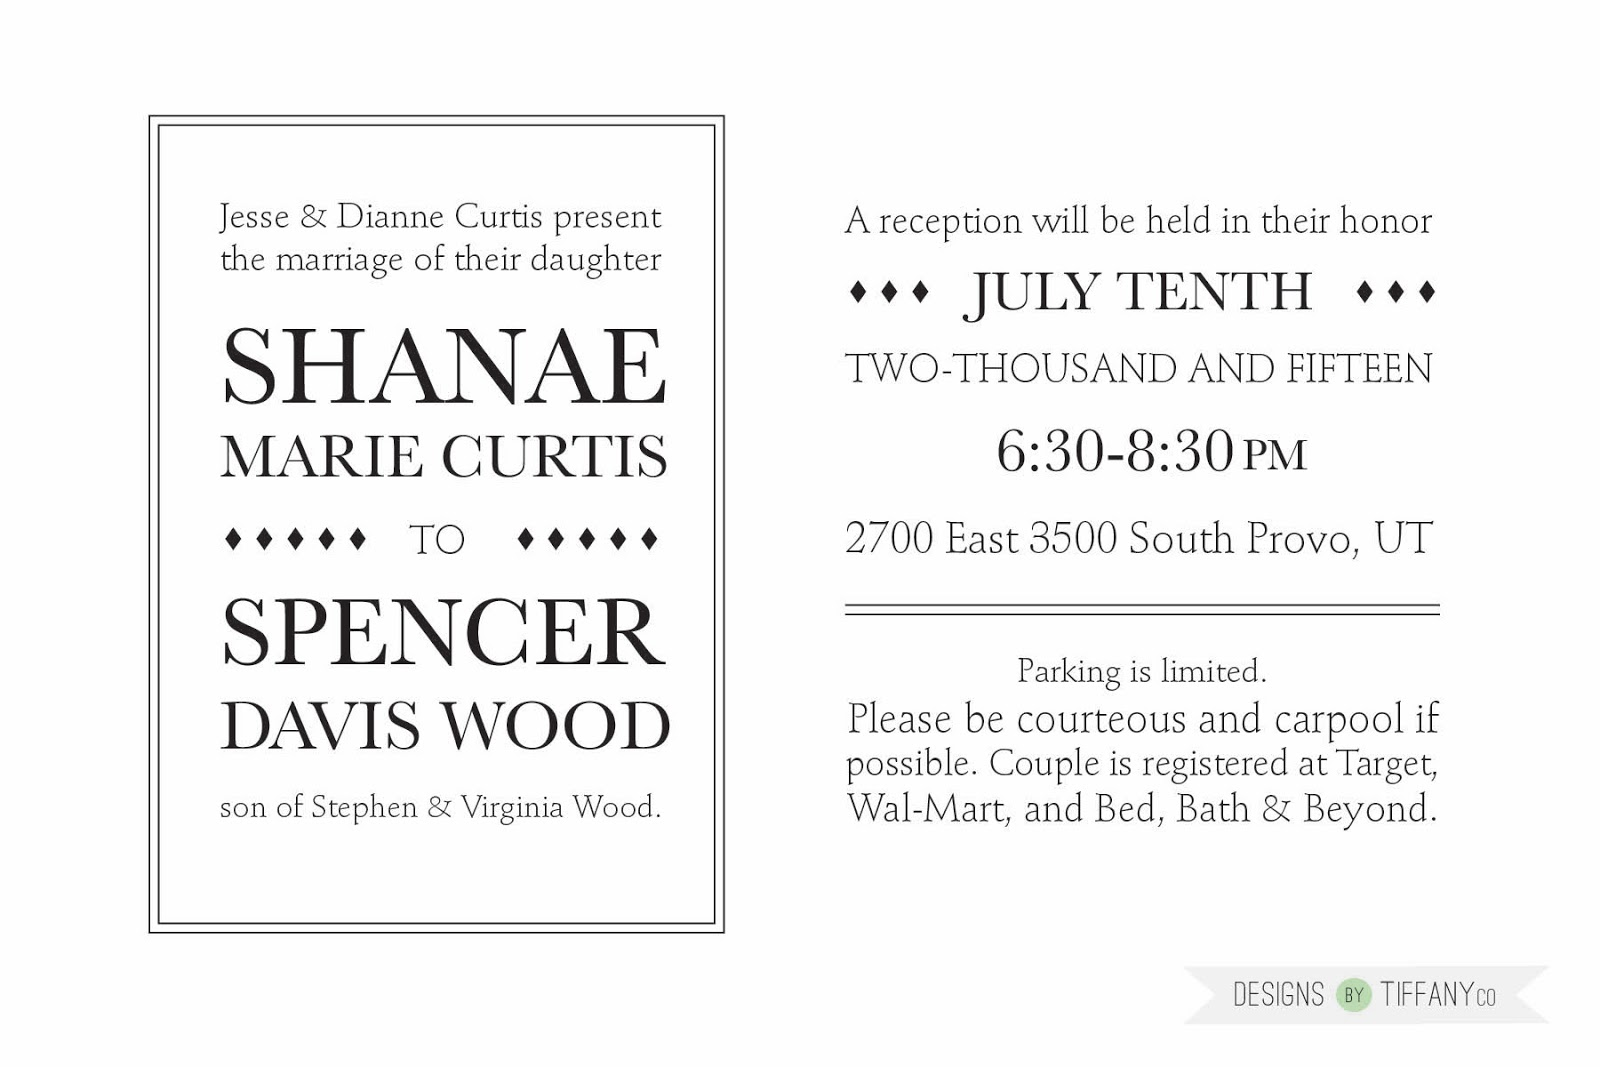 Custom wedding invitation designs by tiffanyco my cute sister in law is getting married i told her i would love to design her wedding invitations for her as part of our gift to her and that i know how monicamarmolfo Images